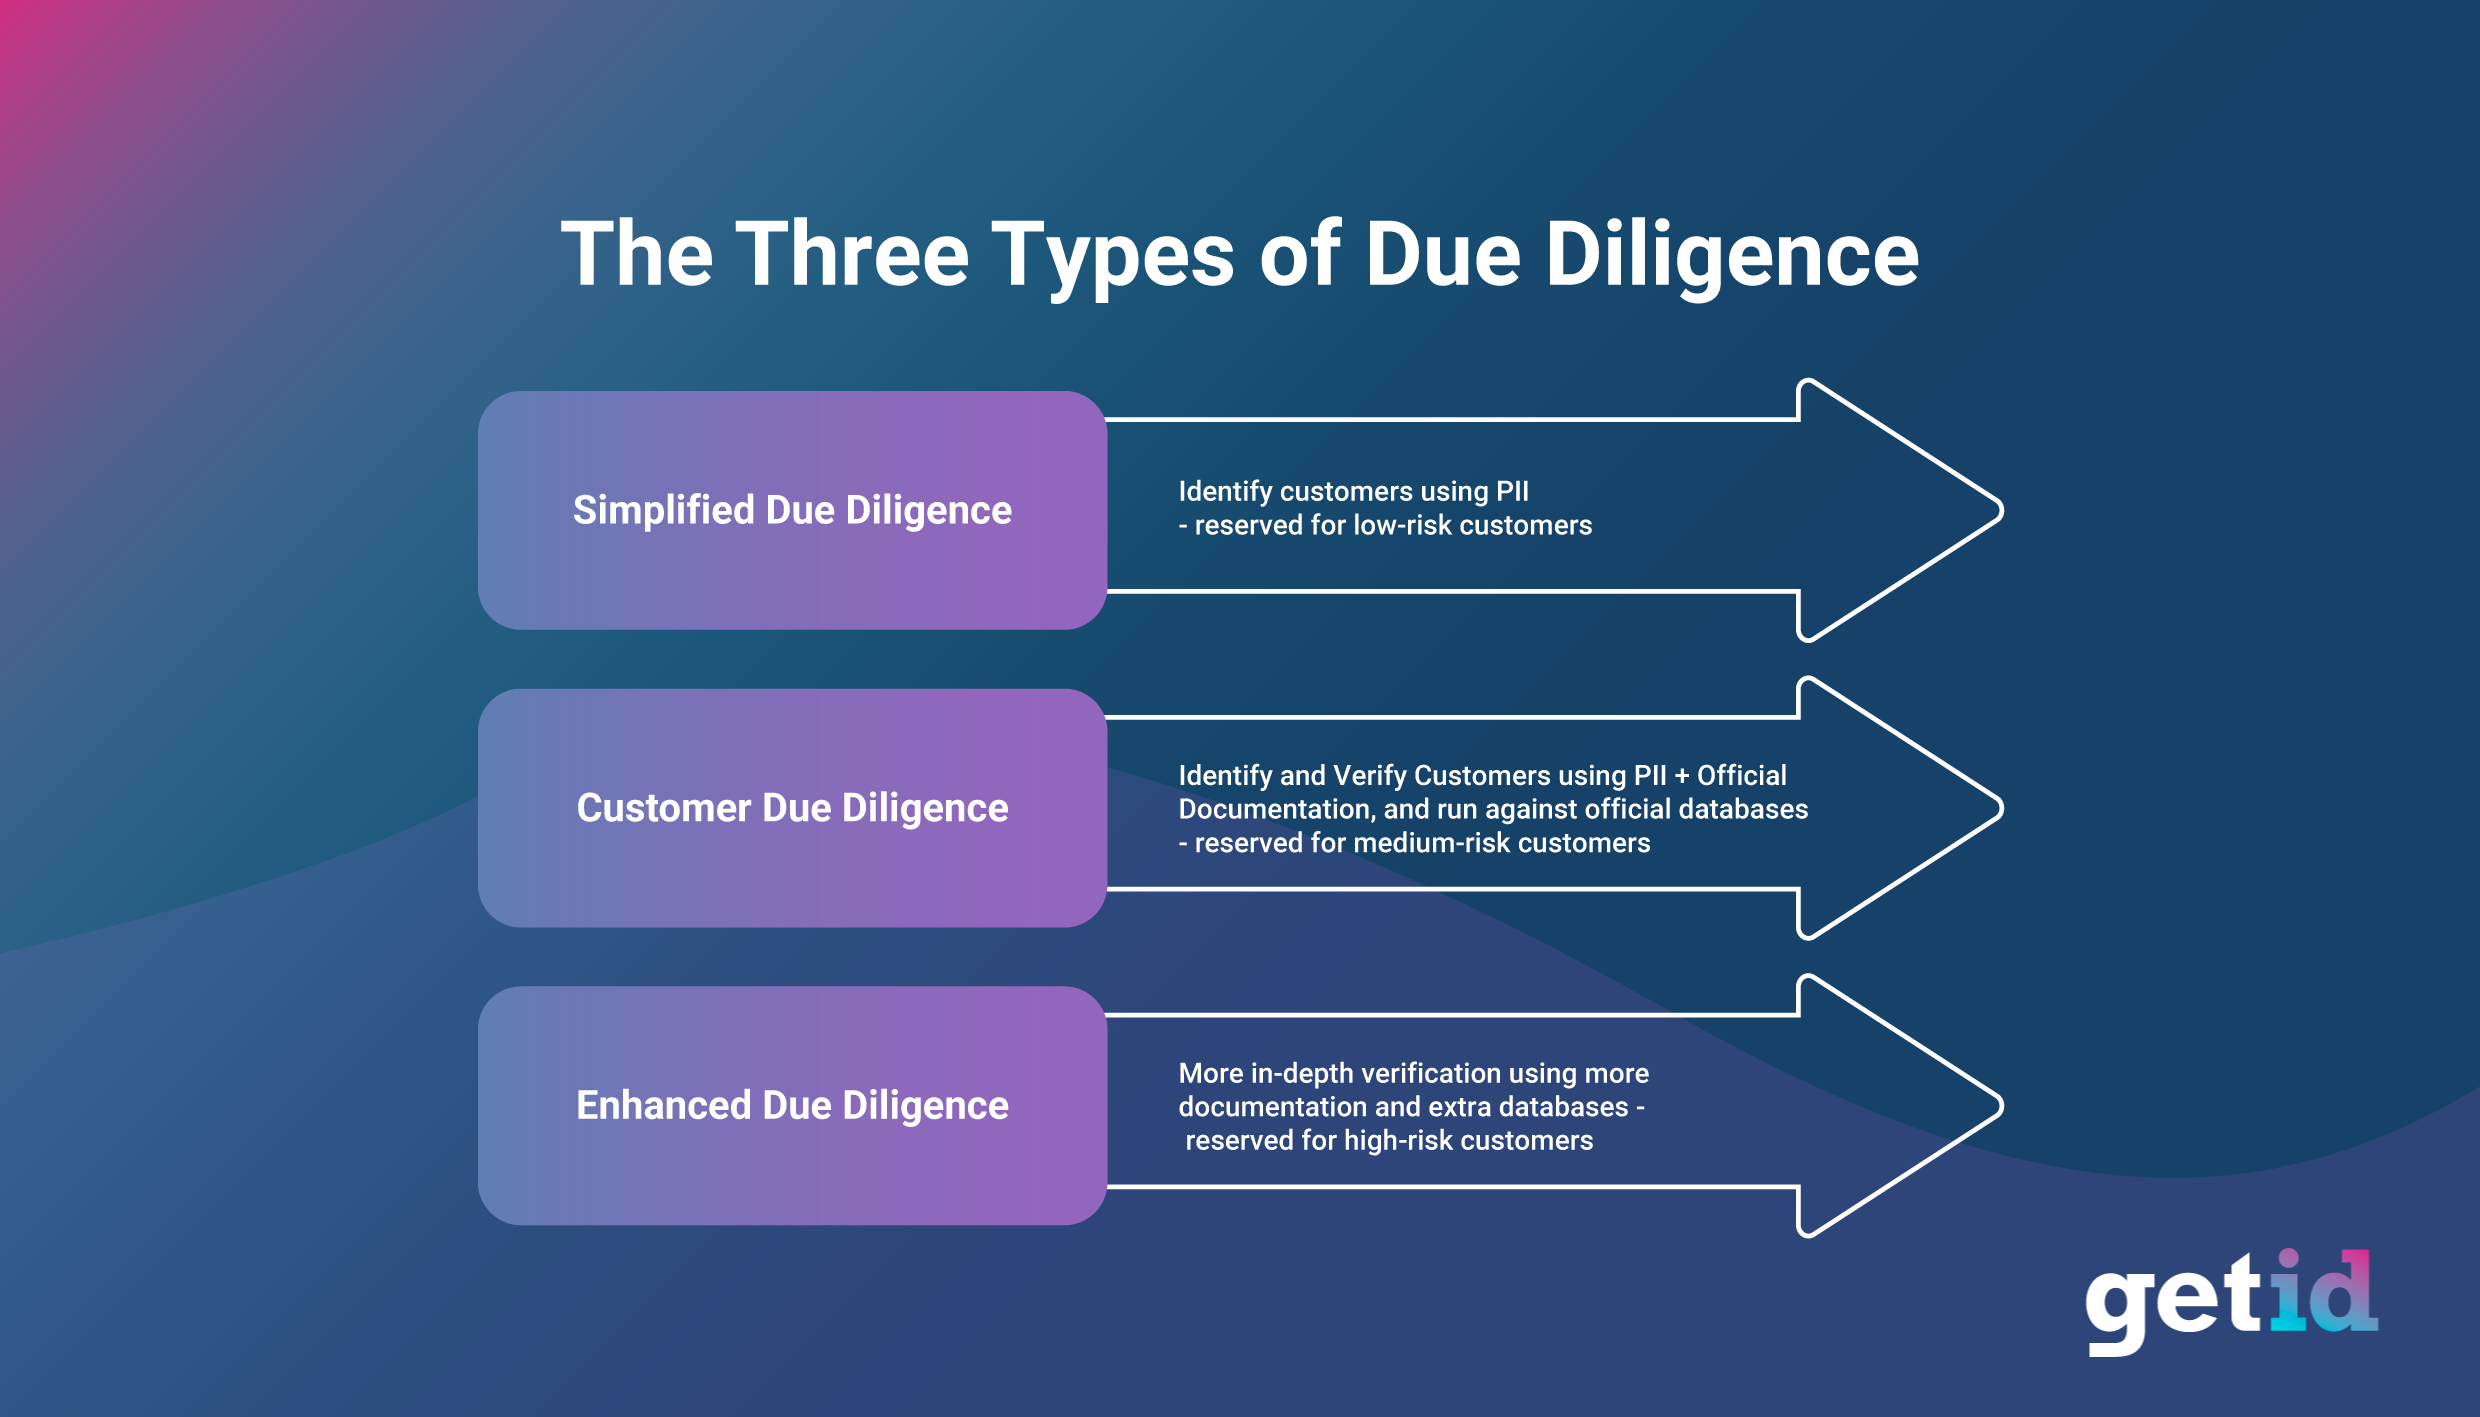 The Three Types of Due Diligence